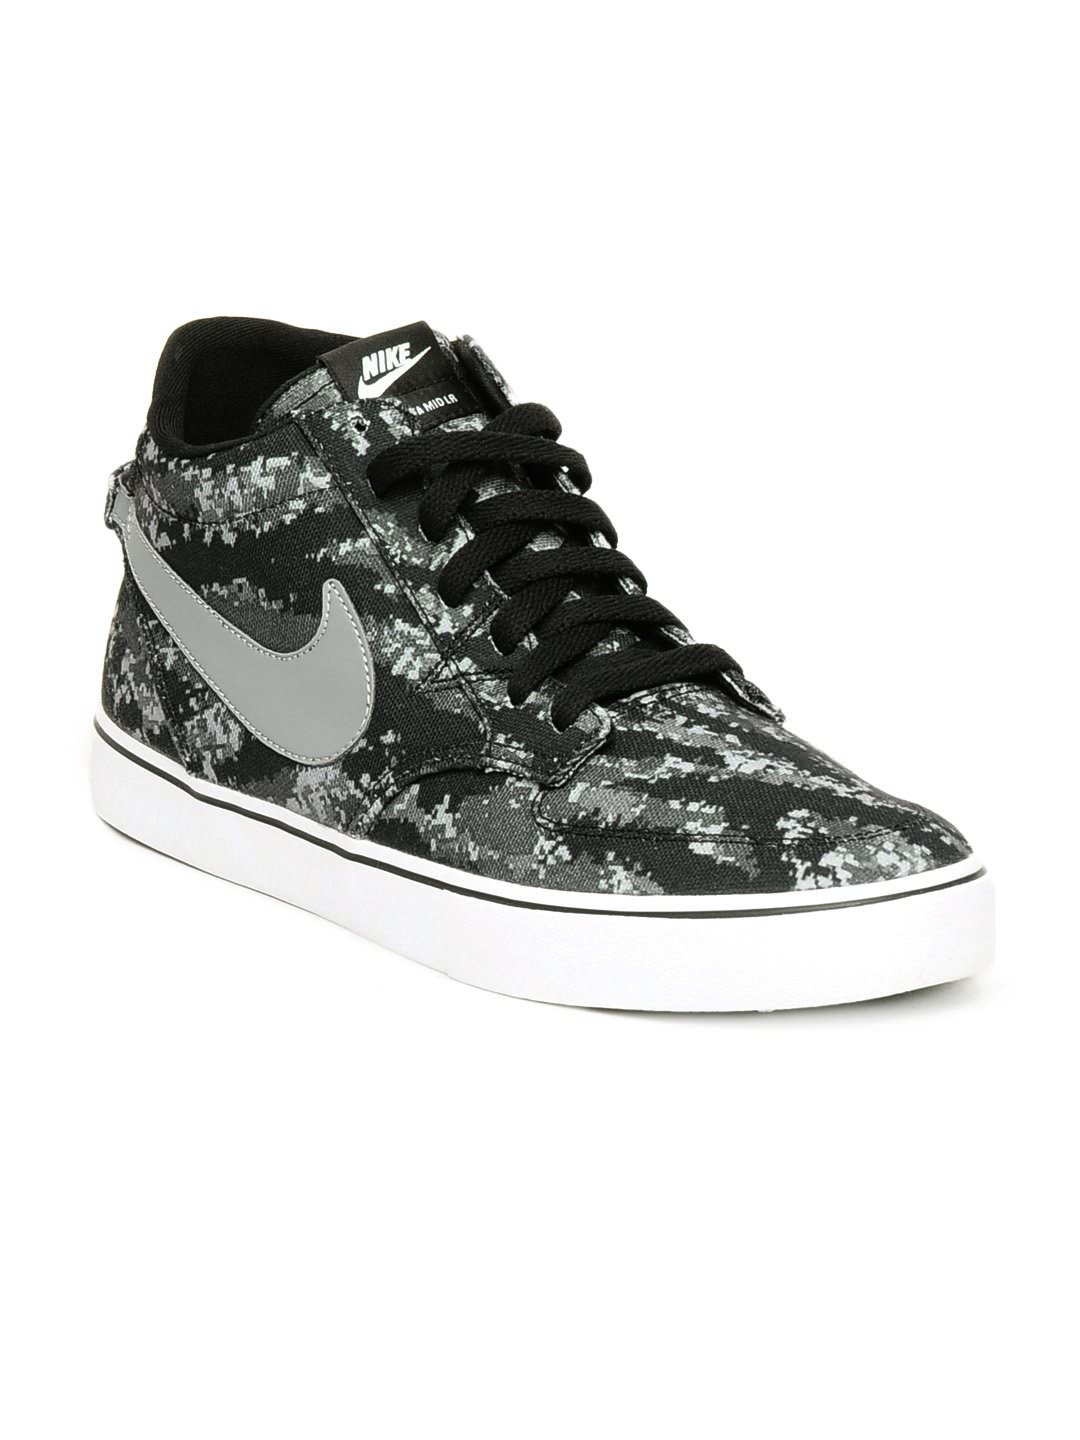 Latest Nike Casual Shoes For Men